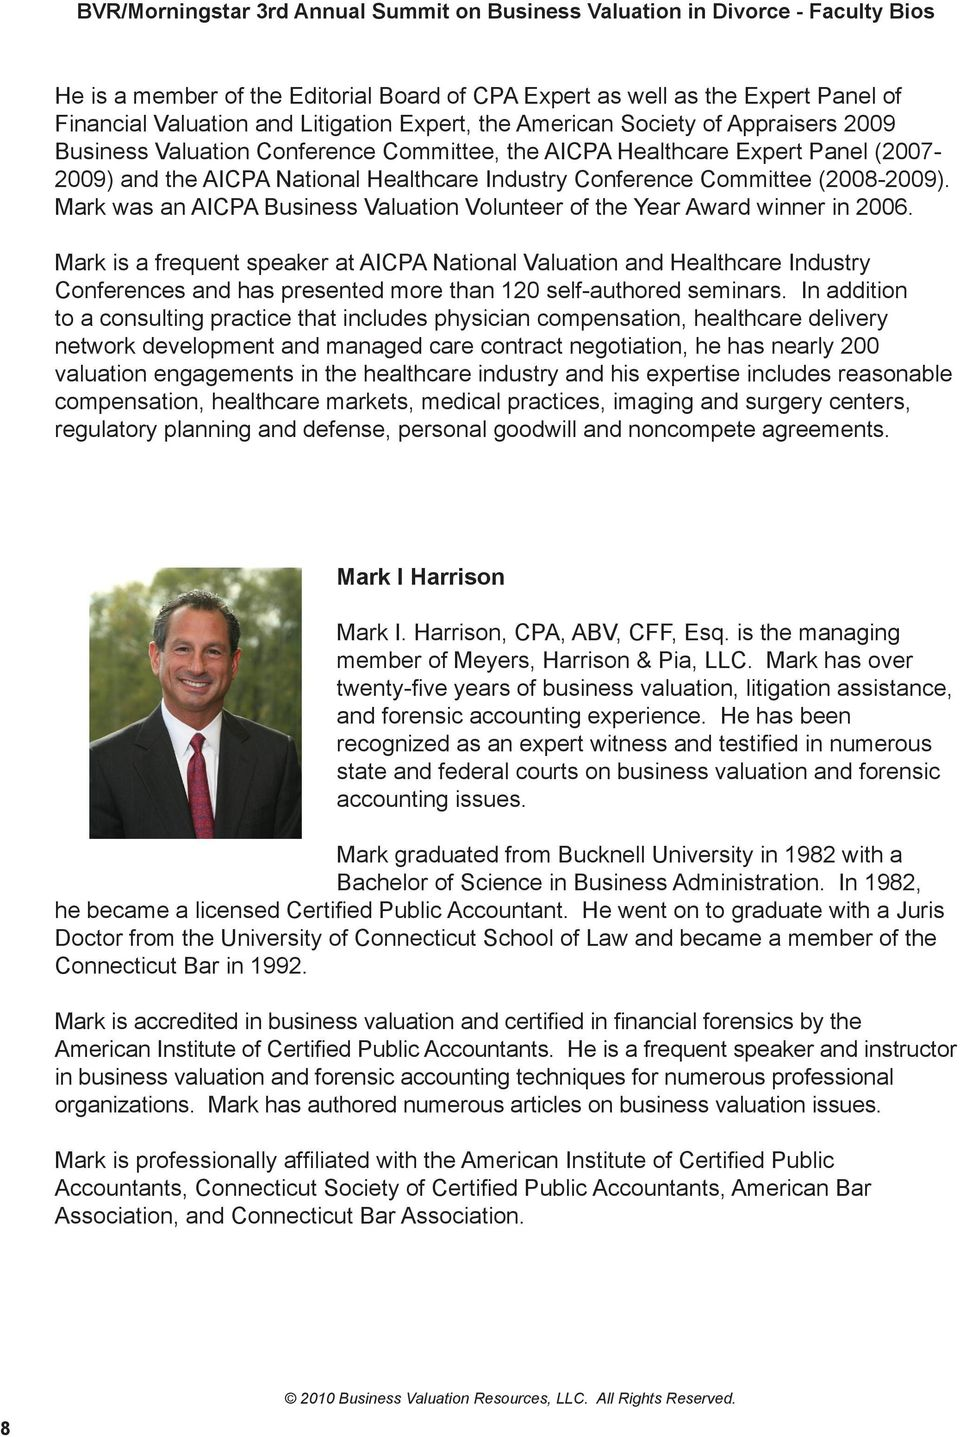 Mark was an AICPA Business Valuation Volunteer of the Year Award winner in 2006.